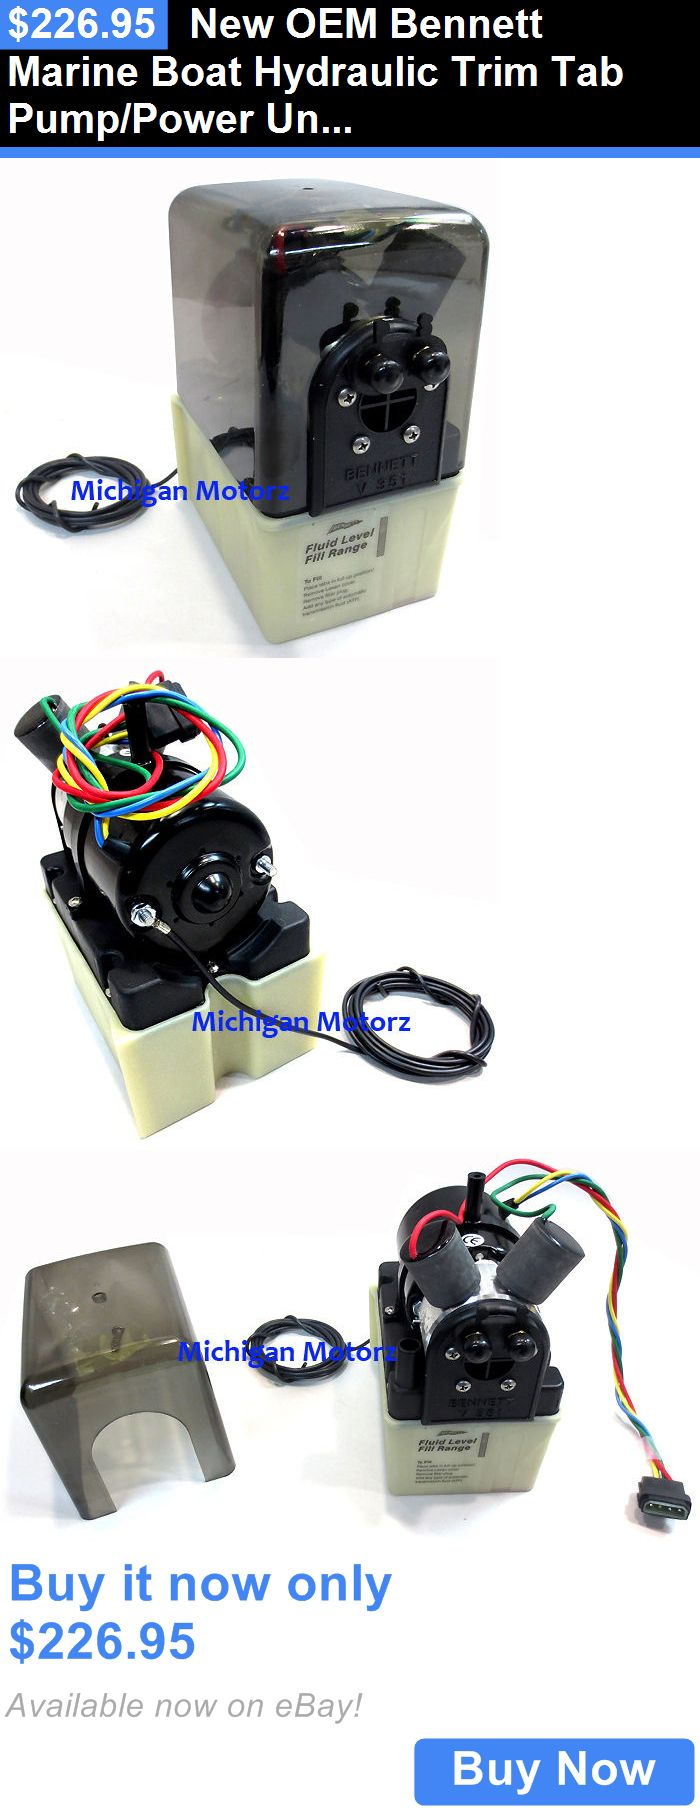 medium resolution of 10 best fishnlight images on pinterest boat electrical wiring diagram ultra vee boat parts new oem